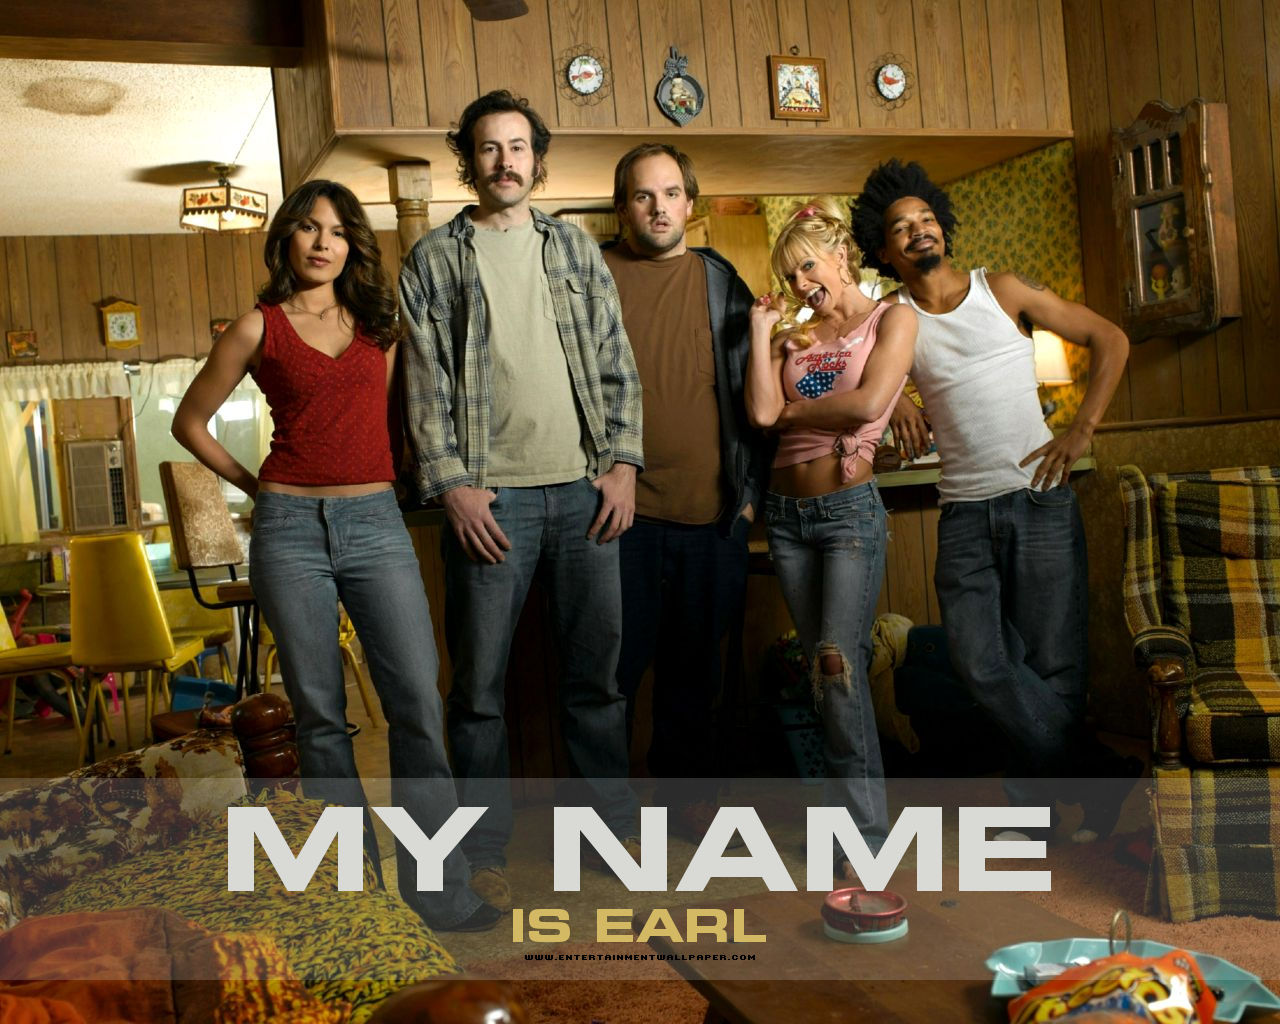 my name is earl wallpaper 1280x1024 1 1280x1024